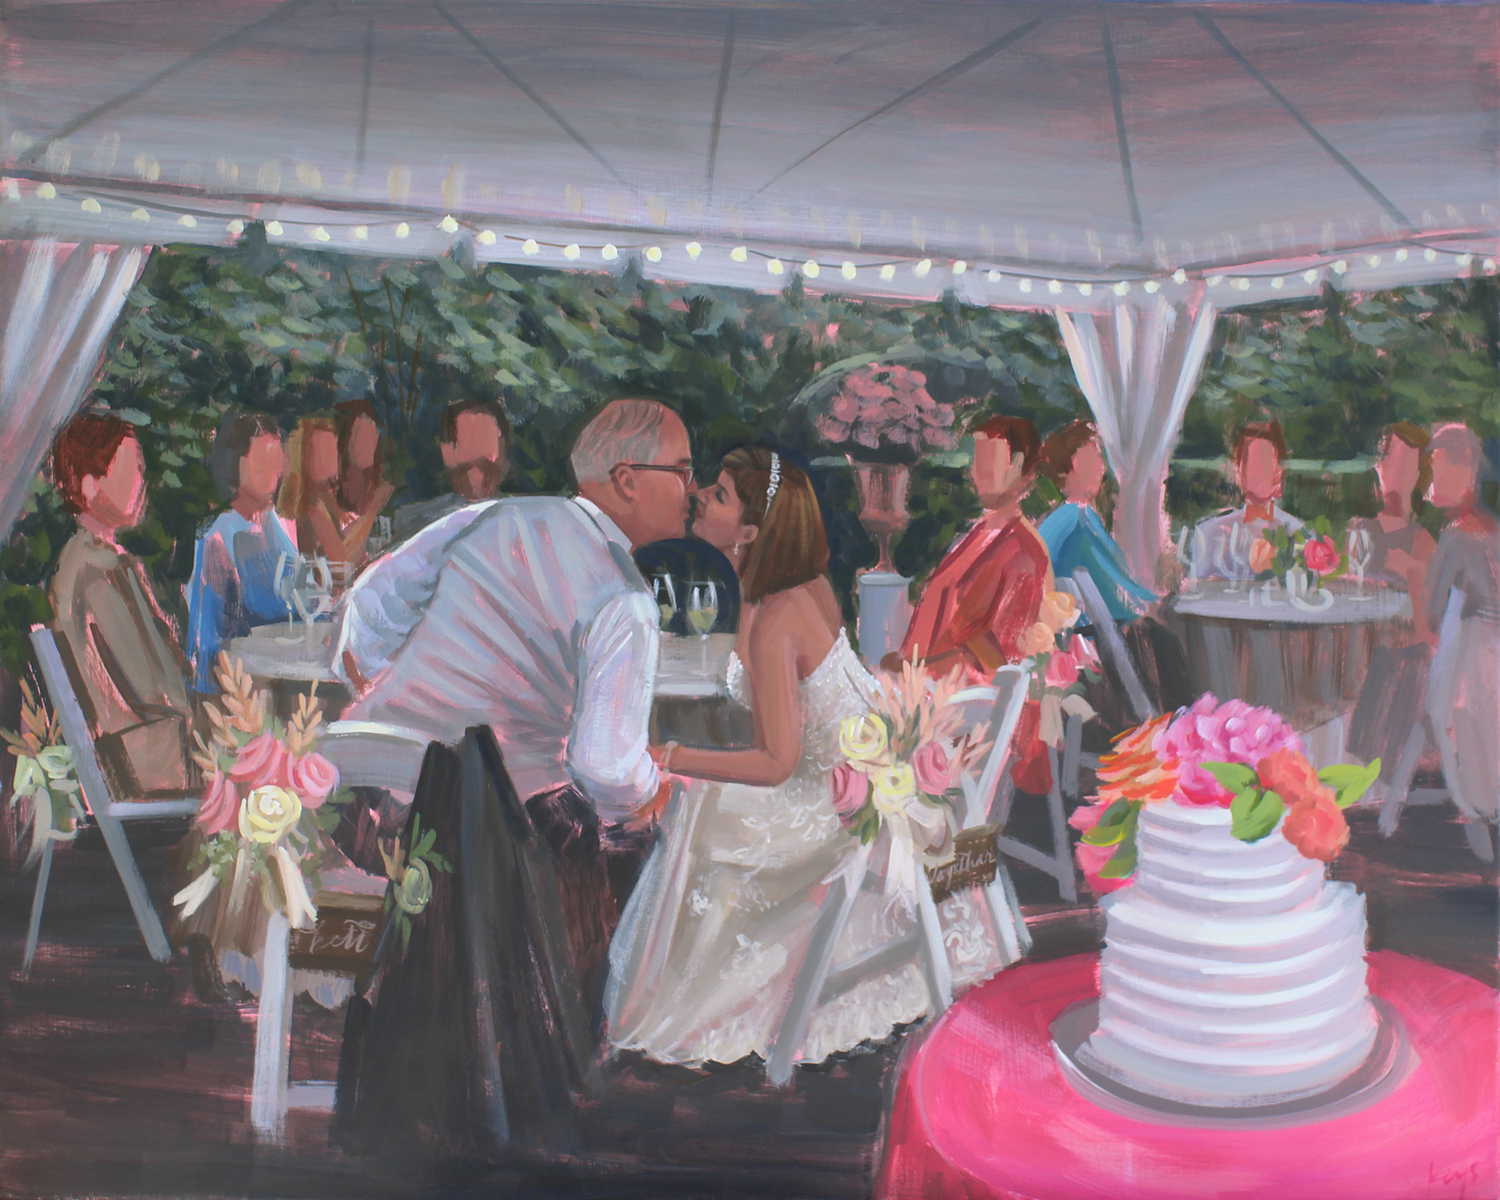 Wedding Painter, Ben Keys, created this painting for Sandra + Jim's First Anniversary merging several of their wedding photos together.